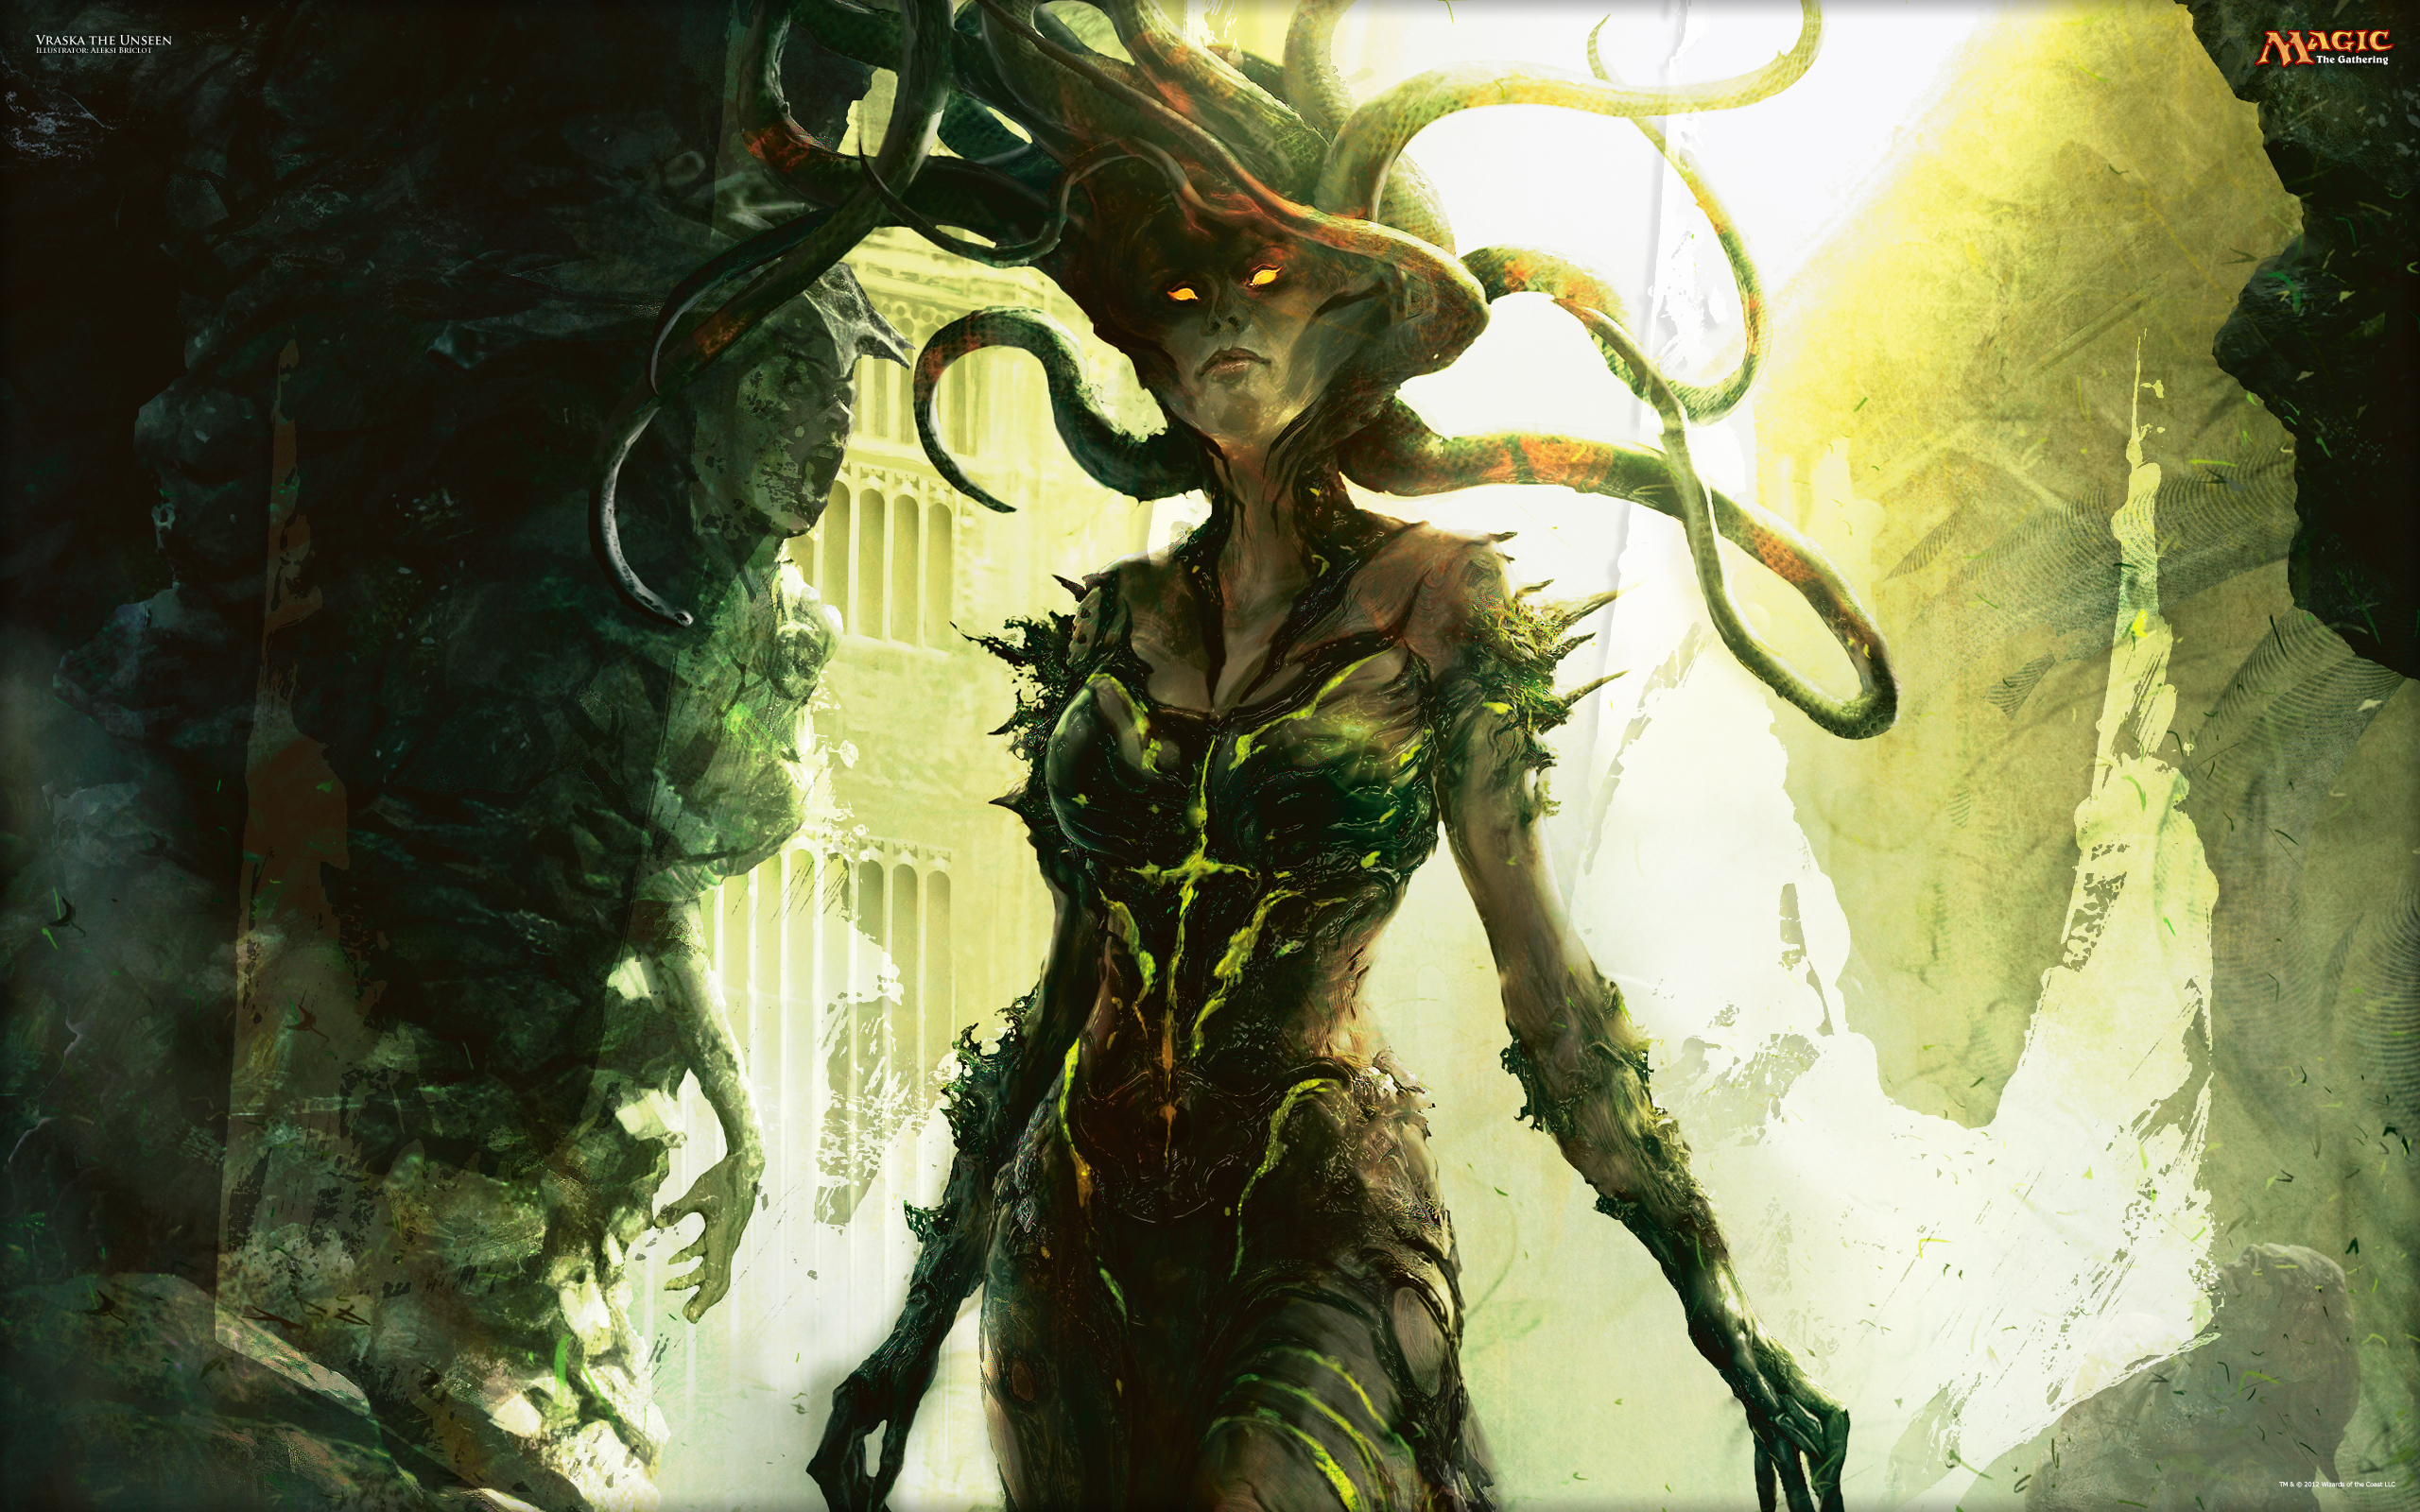 magic the gathering wallpaper  Wallpaper of the Week: Vraska the Unseen | MAGIC: THE GATHERING